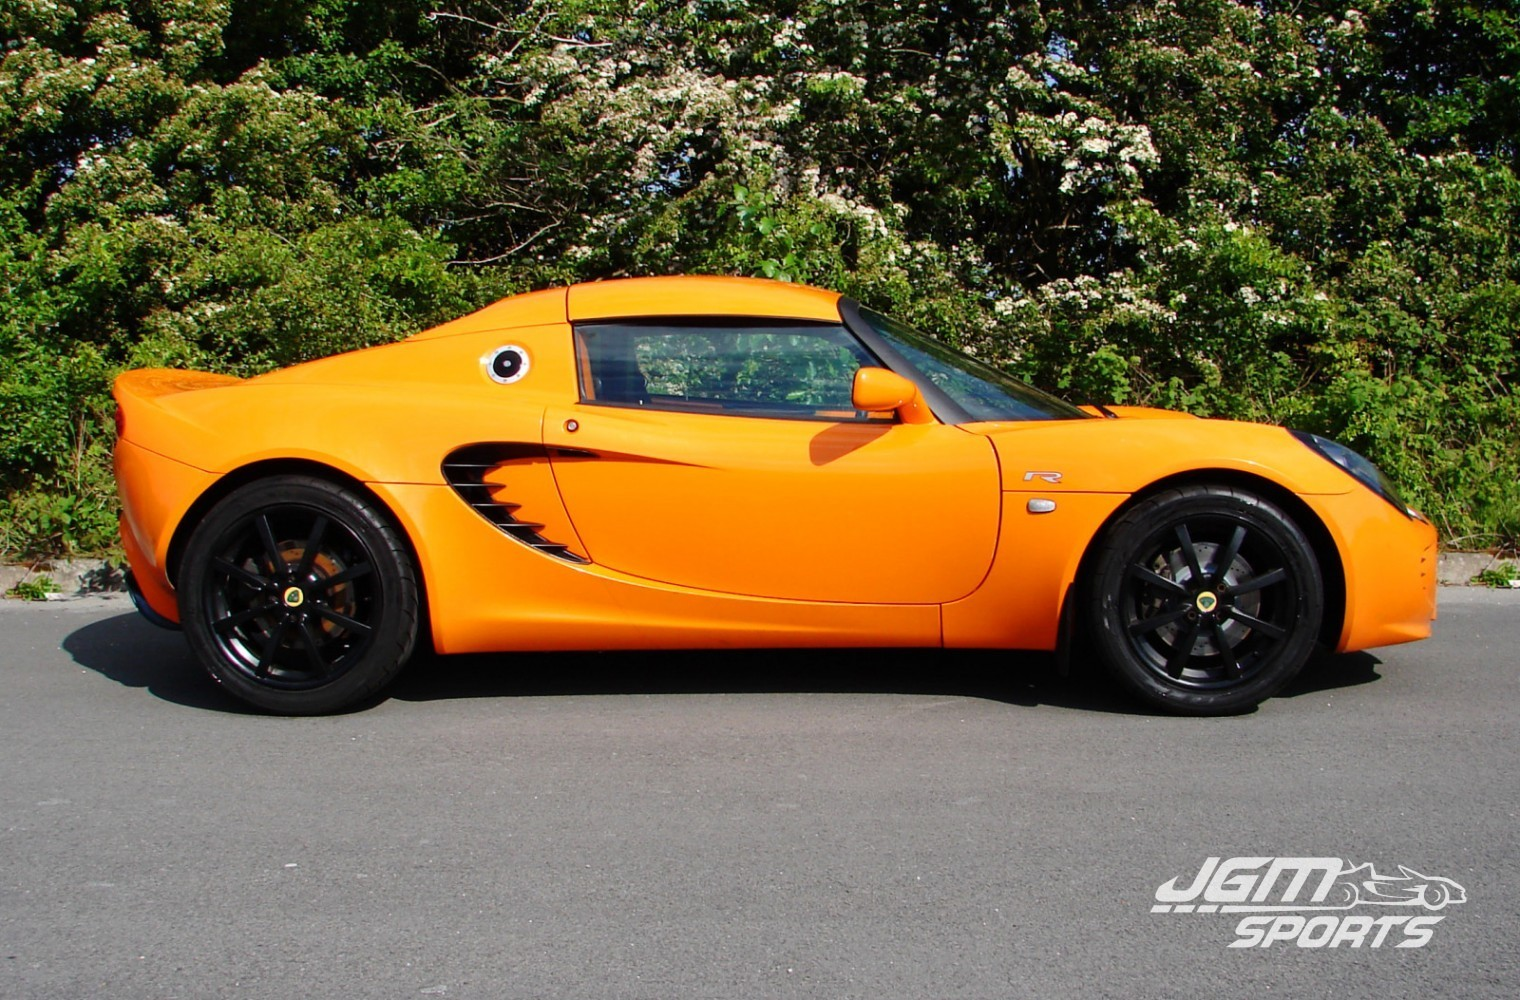 http://www.jgmsports.co.uk/wp-content/uploads/2007-S2-LOTUS-ELISE-R-1-OWNER-FROM-NEW-CHROME-ORANGE-1520x1000.jpg